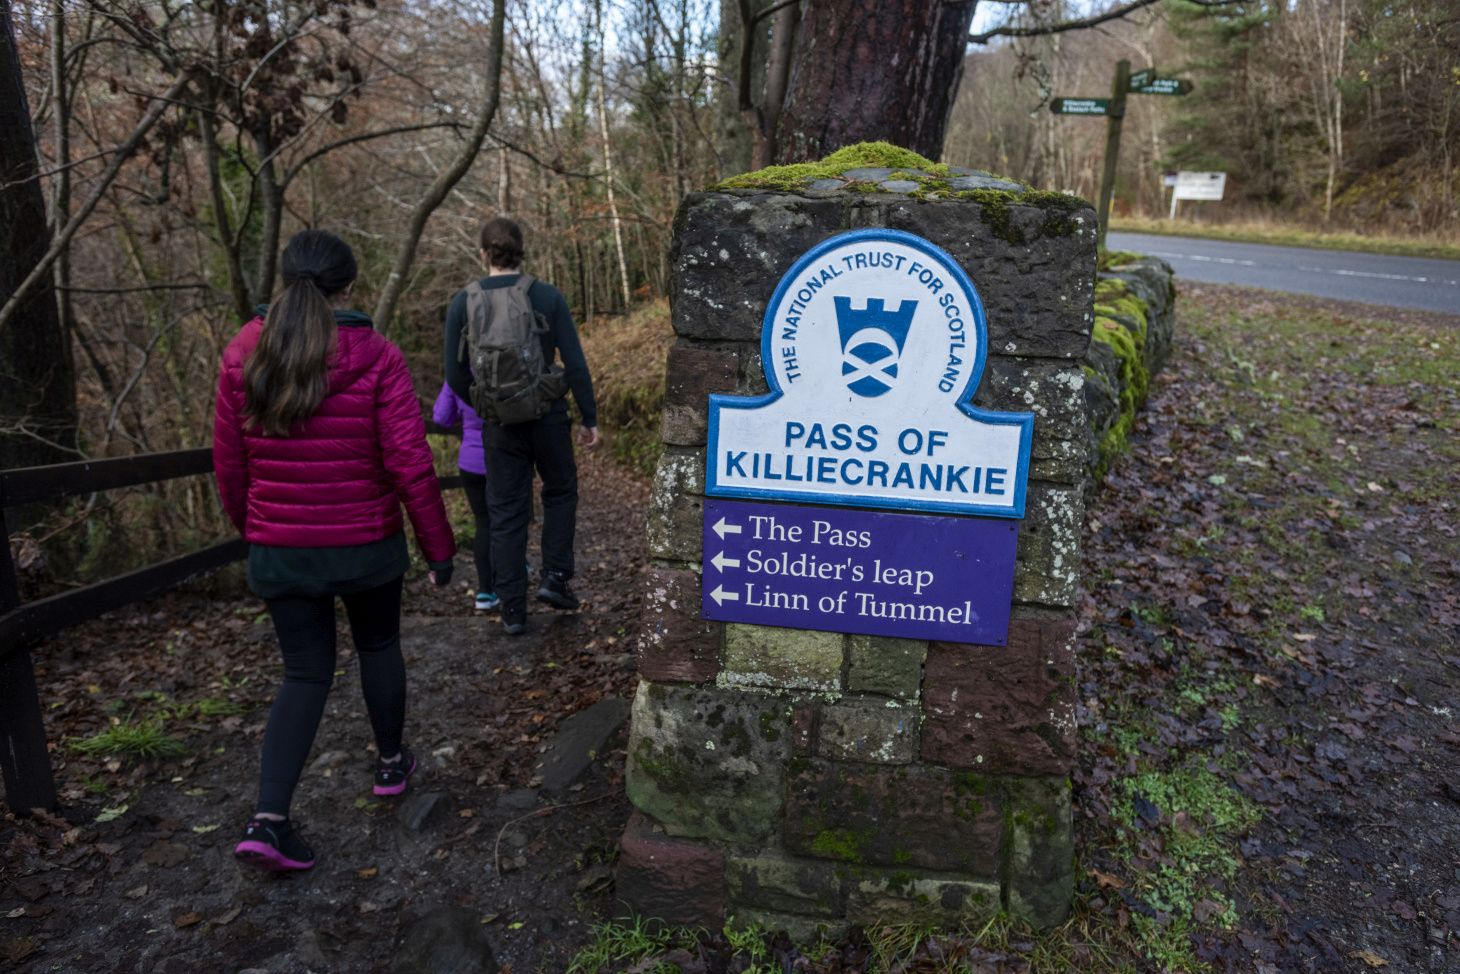 """3 people walking along woodland path with their backs to the camera. A sign in the foreground reads """"The national trust for Scotland. Pass of Killiecrankie"""""""